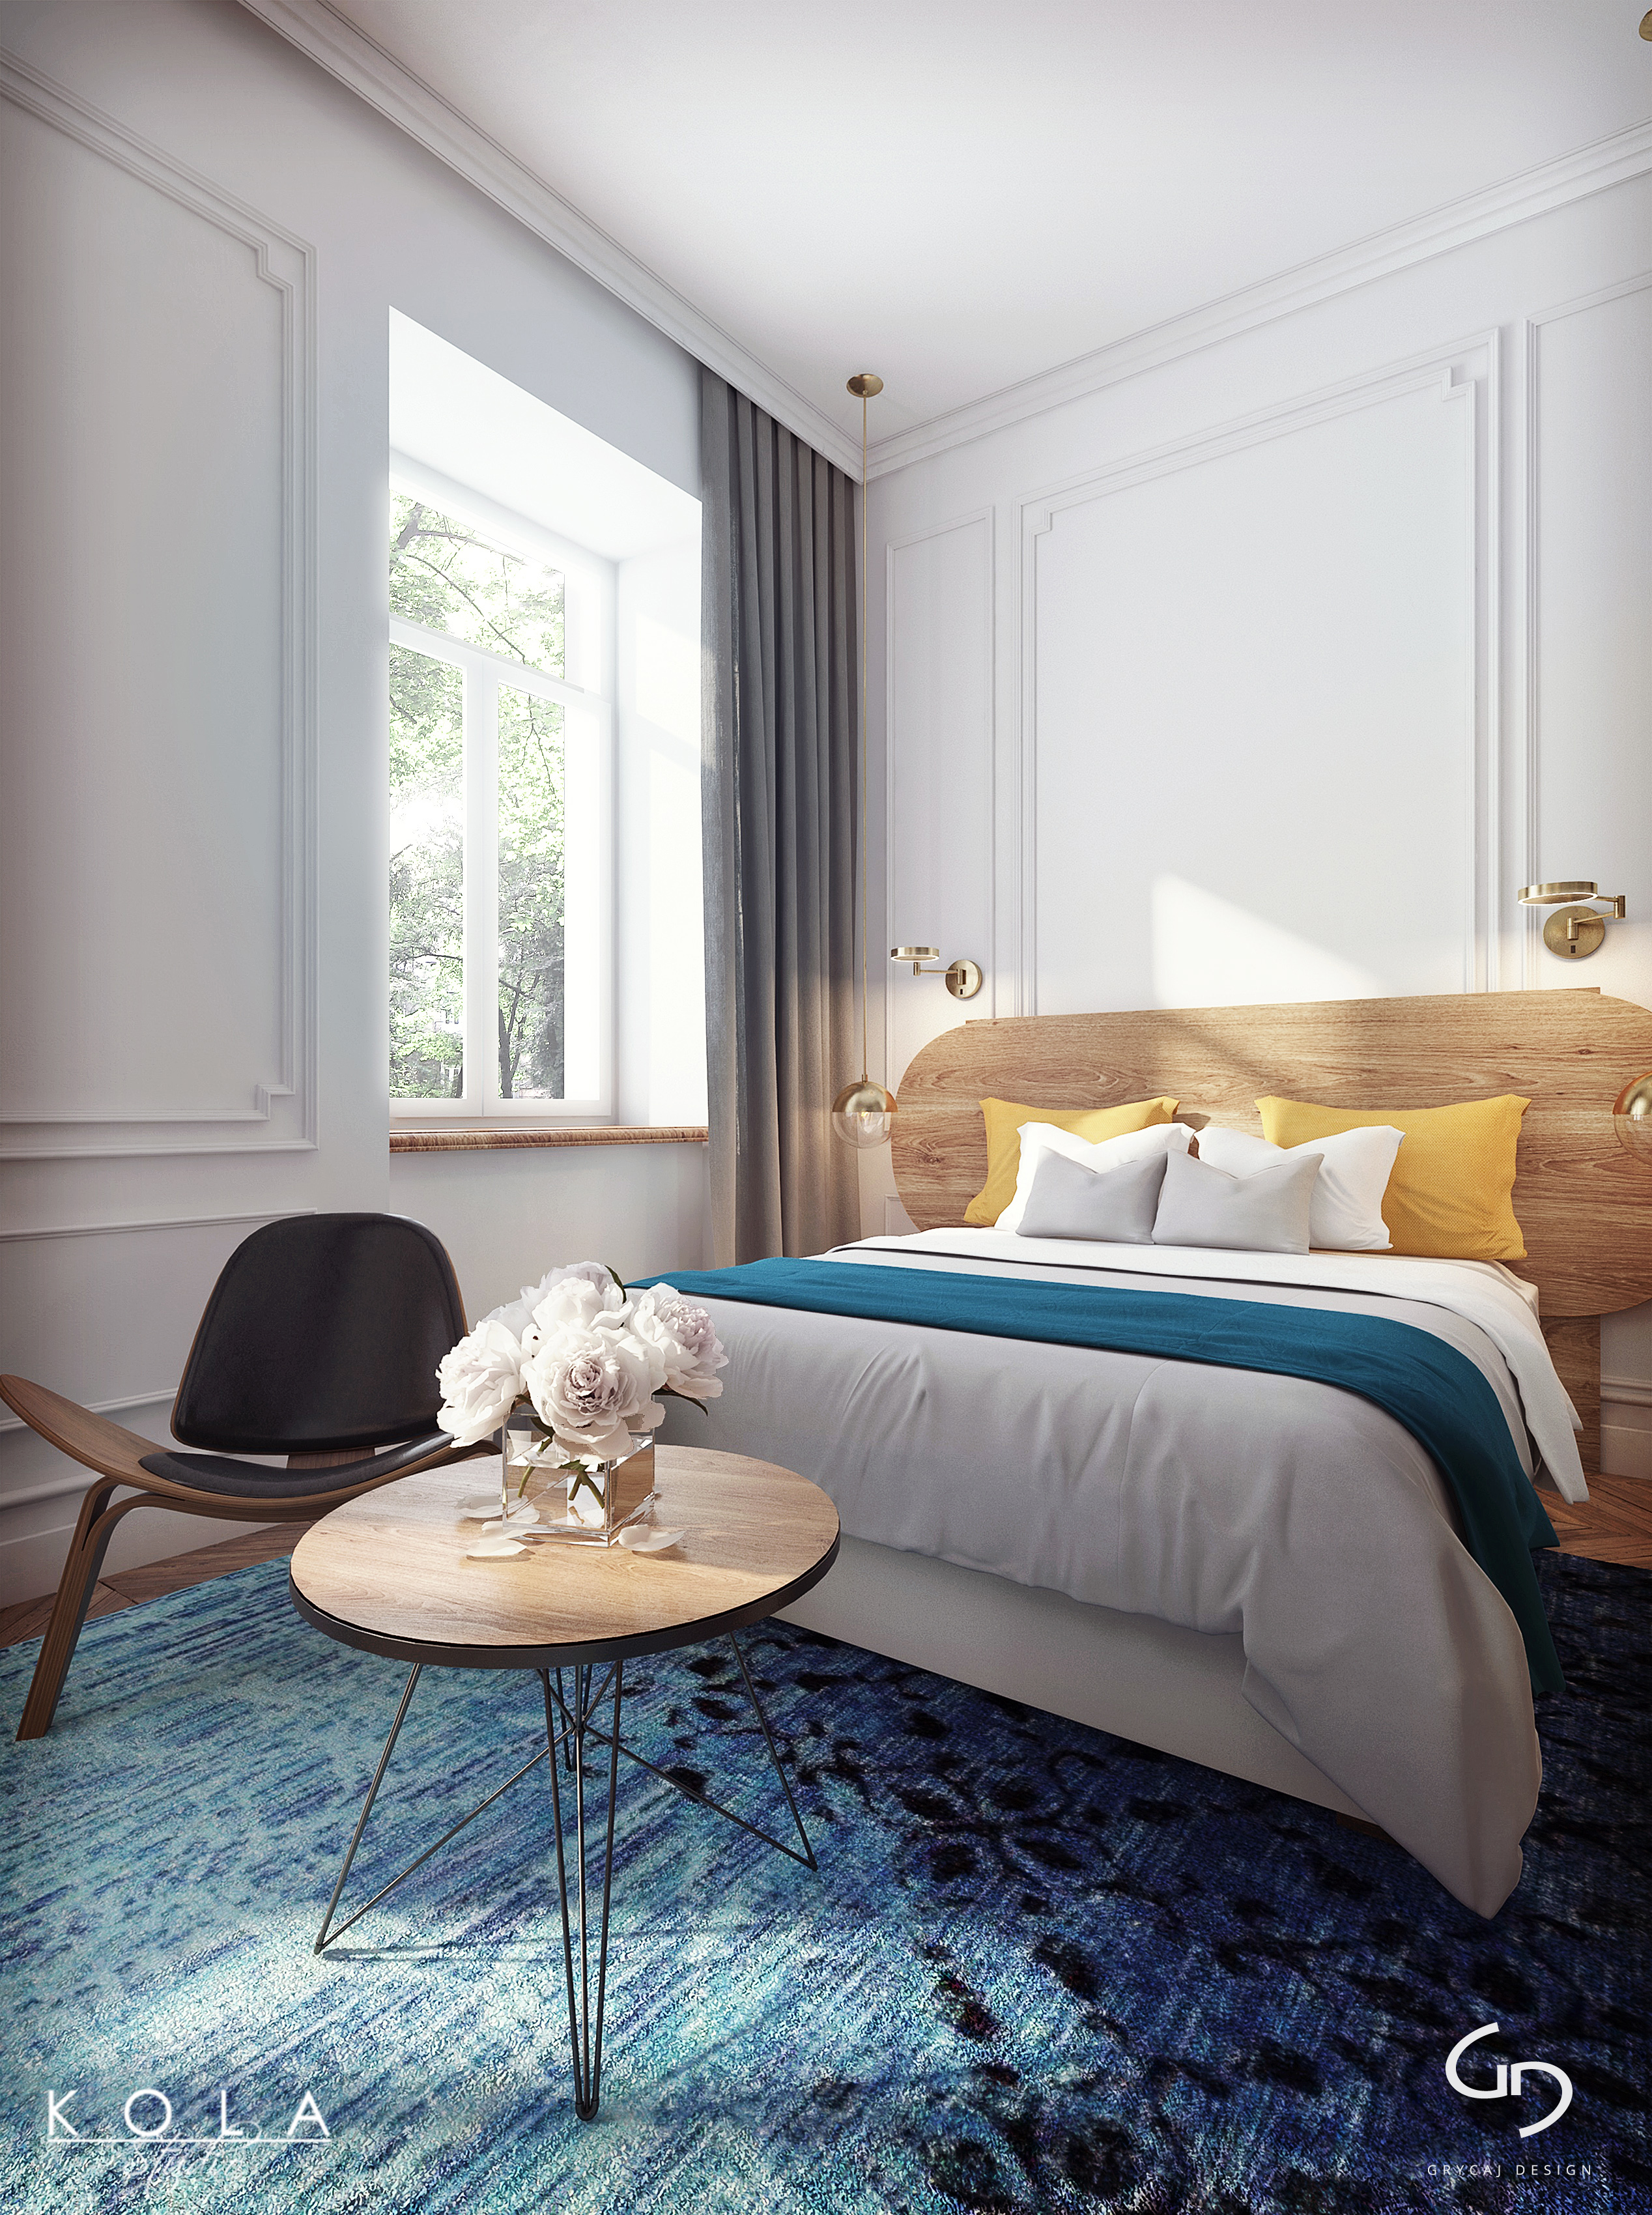 visualizations of a boutique hotel room | freelancers 3d